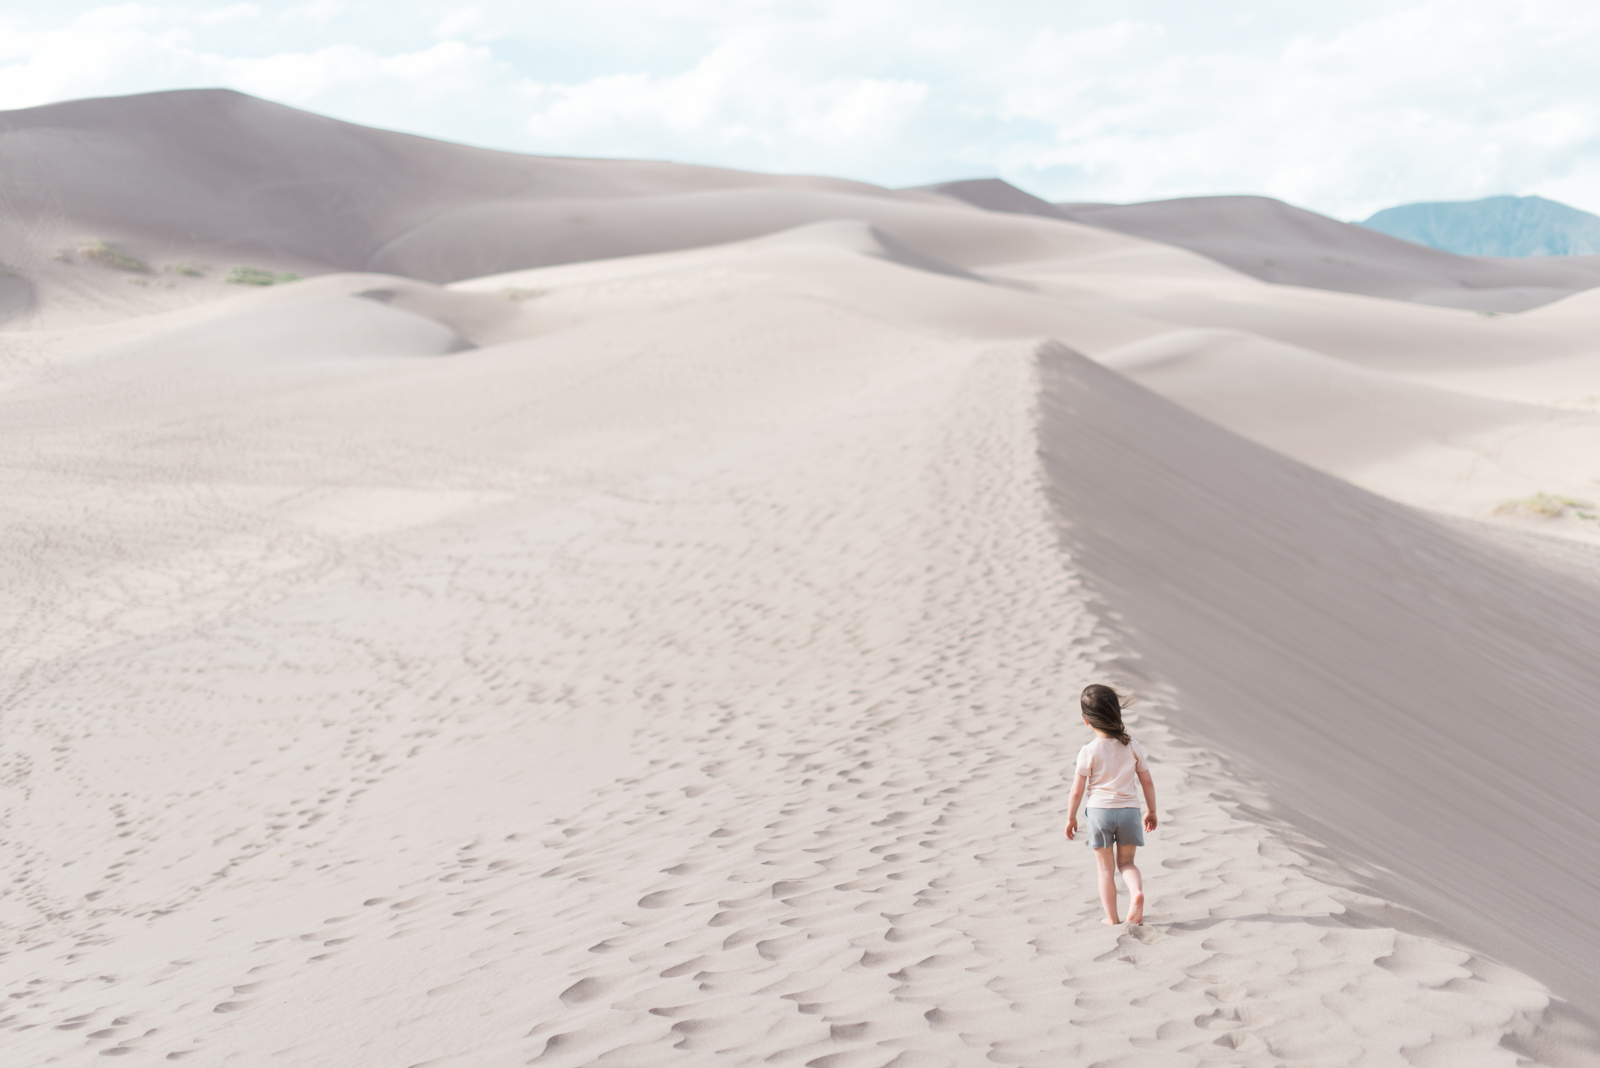 Following our little girl's lead and seeing the world through her eyes...  (Pictured wearing our  Go Outside Merino Tee and Shorts ).